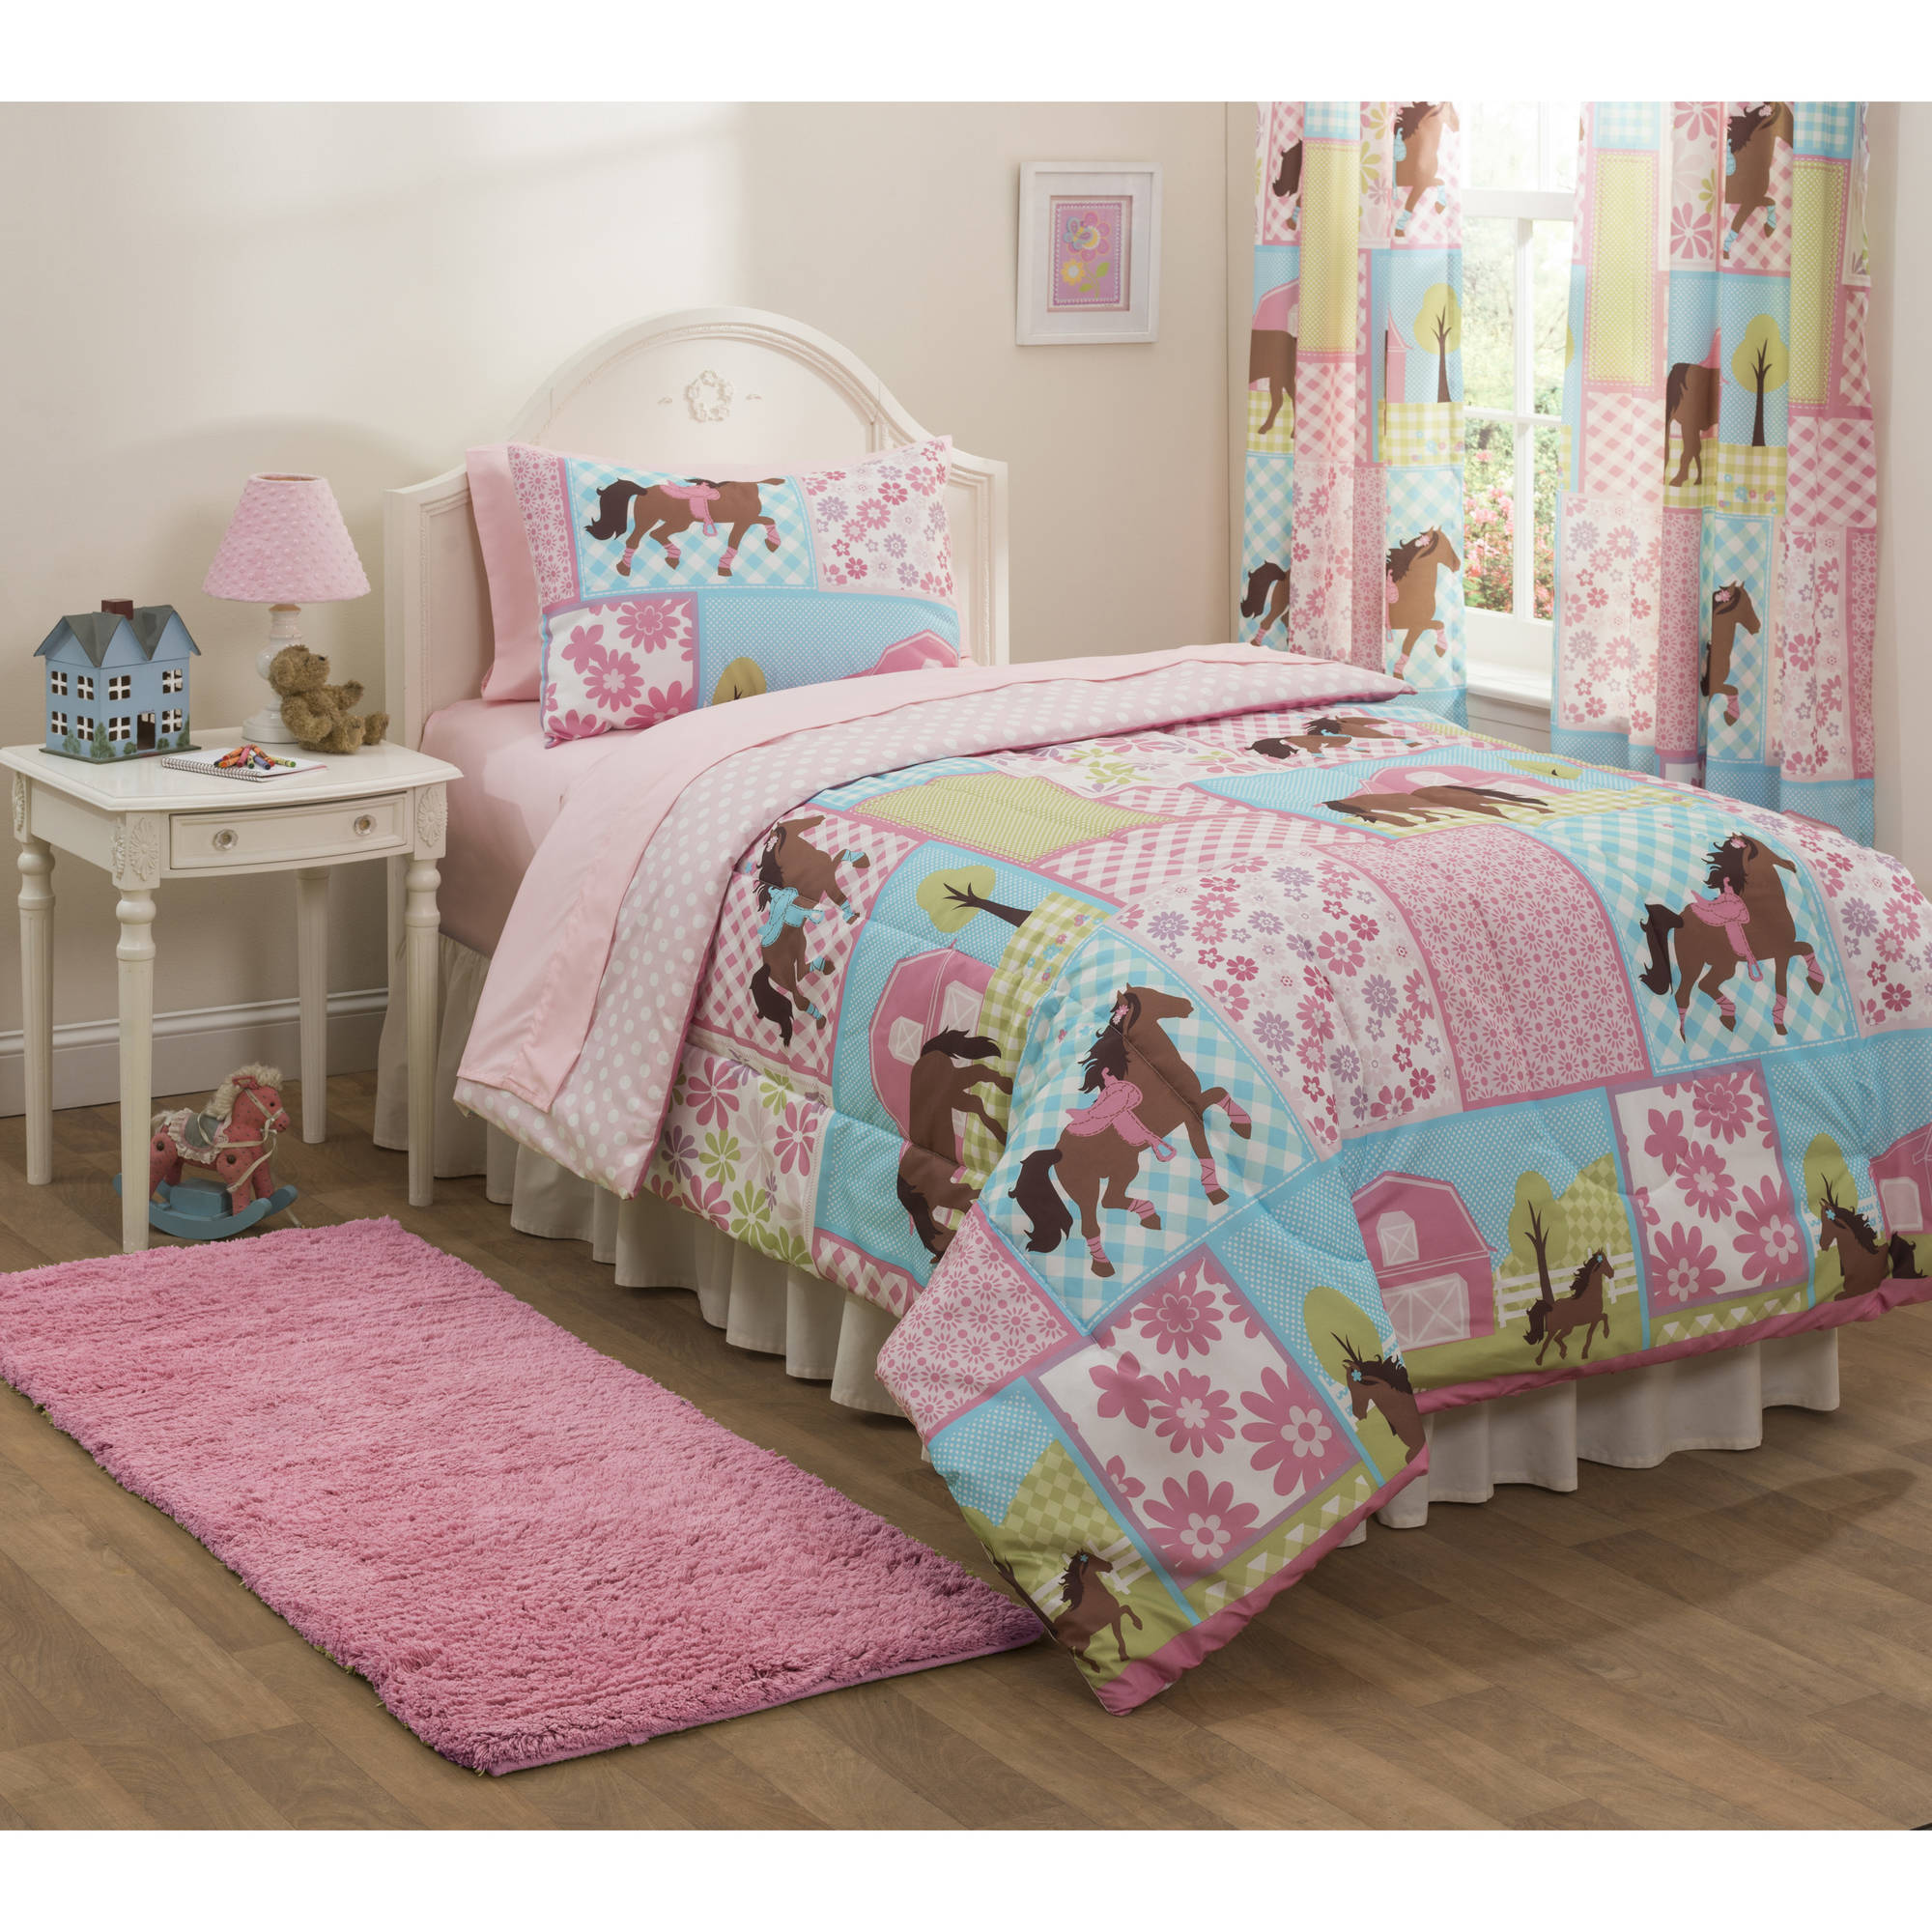 Mainstays Kids Country Meadows Bed In A Bag Bedding Set Ebay